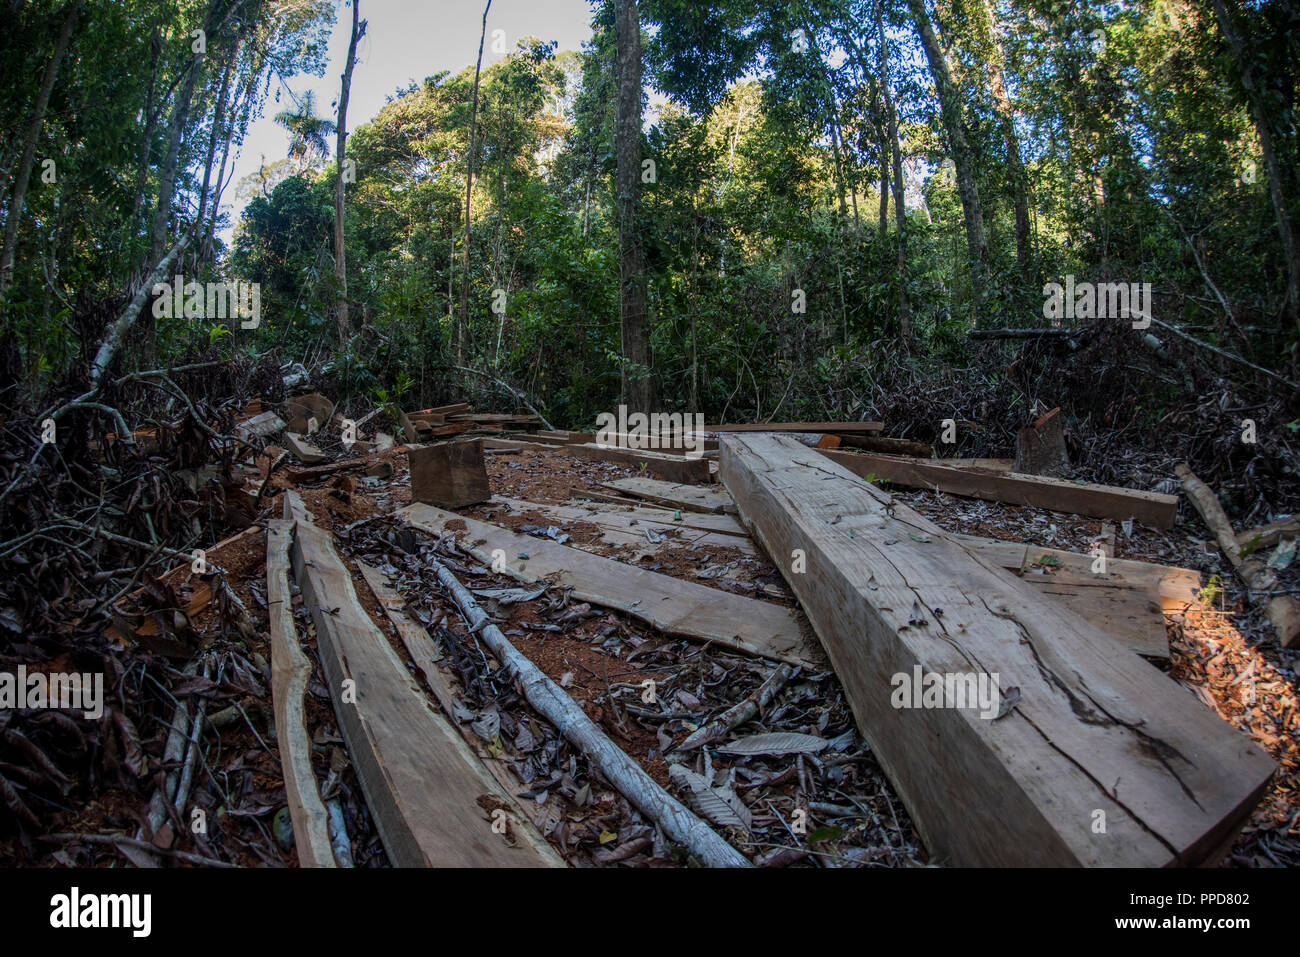 A logging site in Madre de Dios, Peru. Illegal logging is a huge threat to the Amazon rainforest.  Here a mature hardwood tree has been felled. - Stock Image